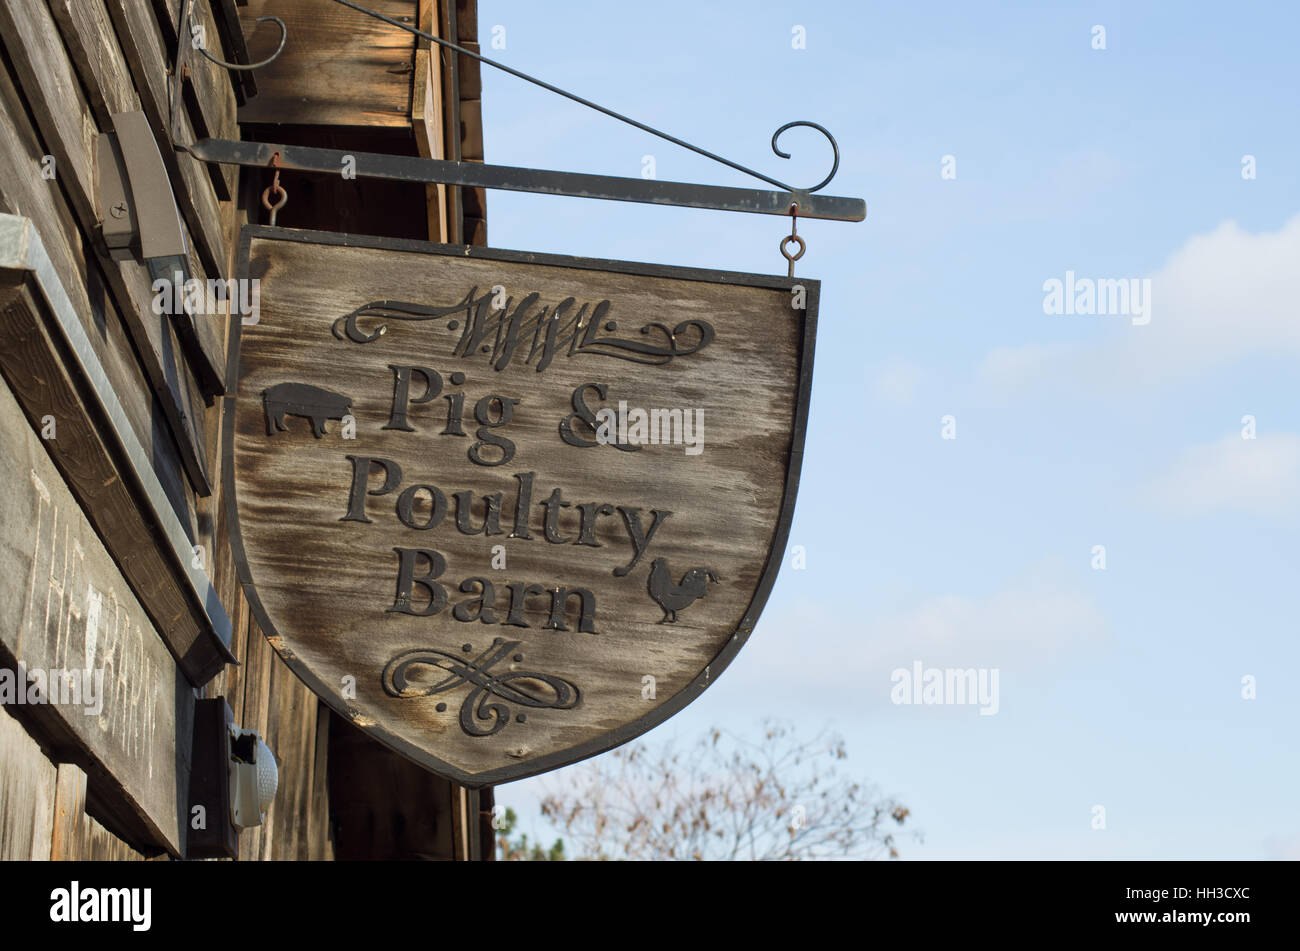 Wooden sign saying Pig & Poultry Barn - Stock Image